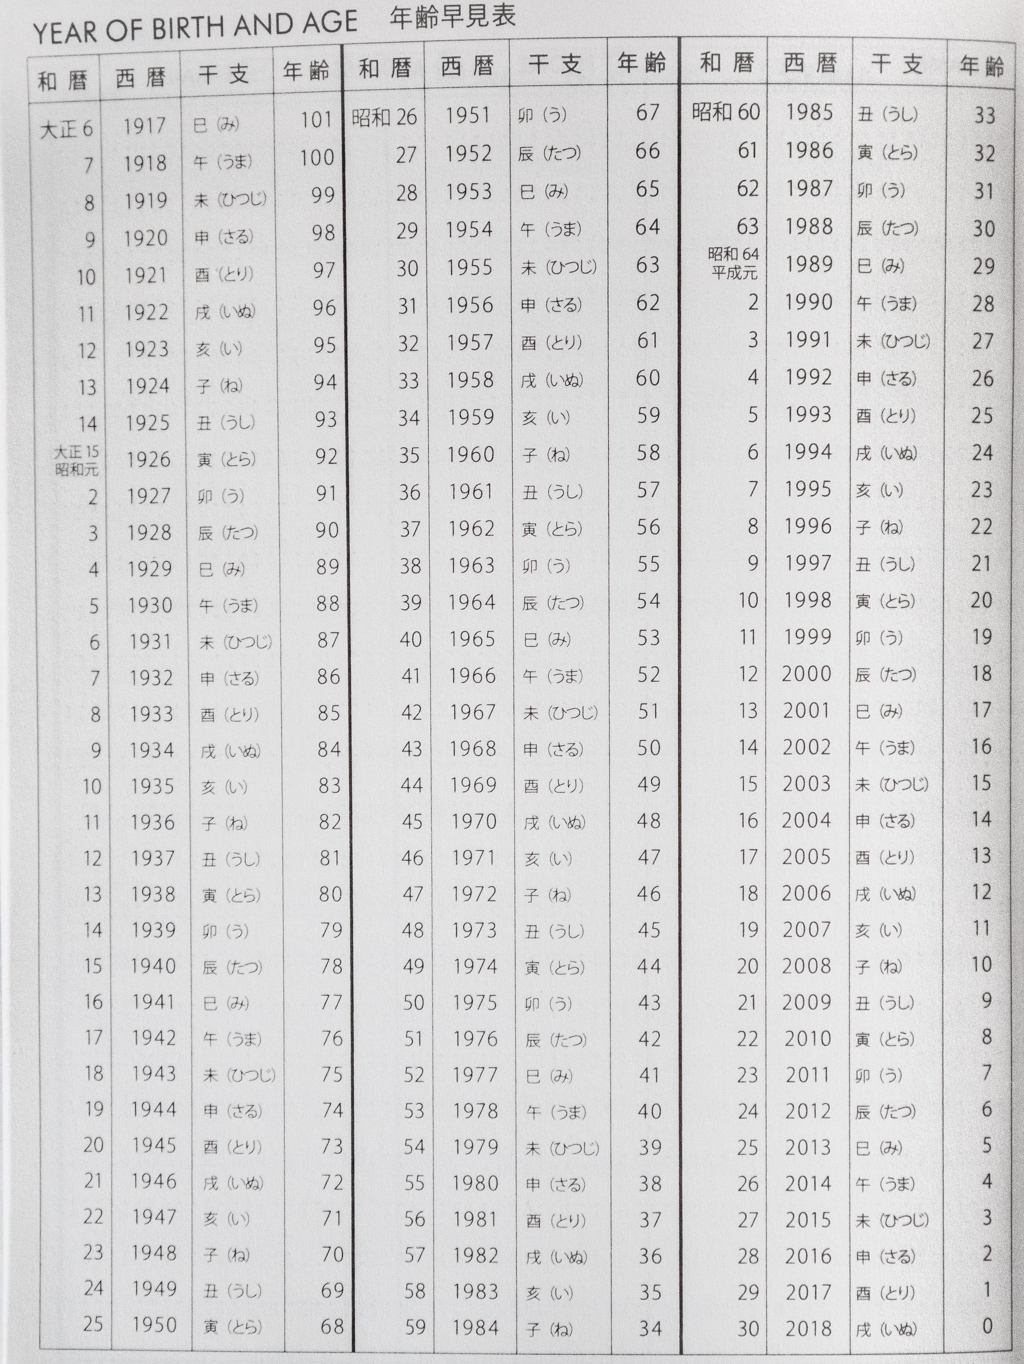 japanese year of birth age chart